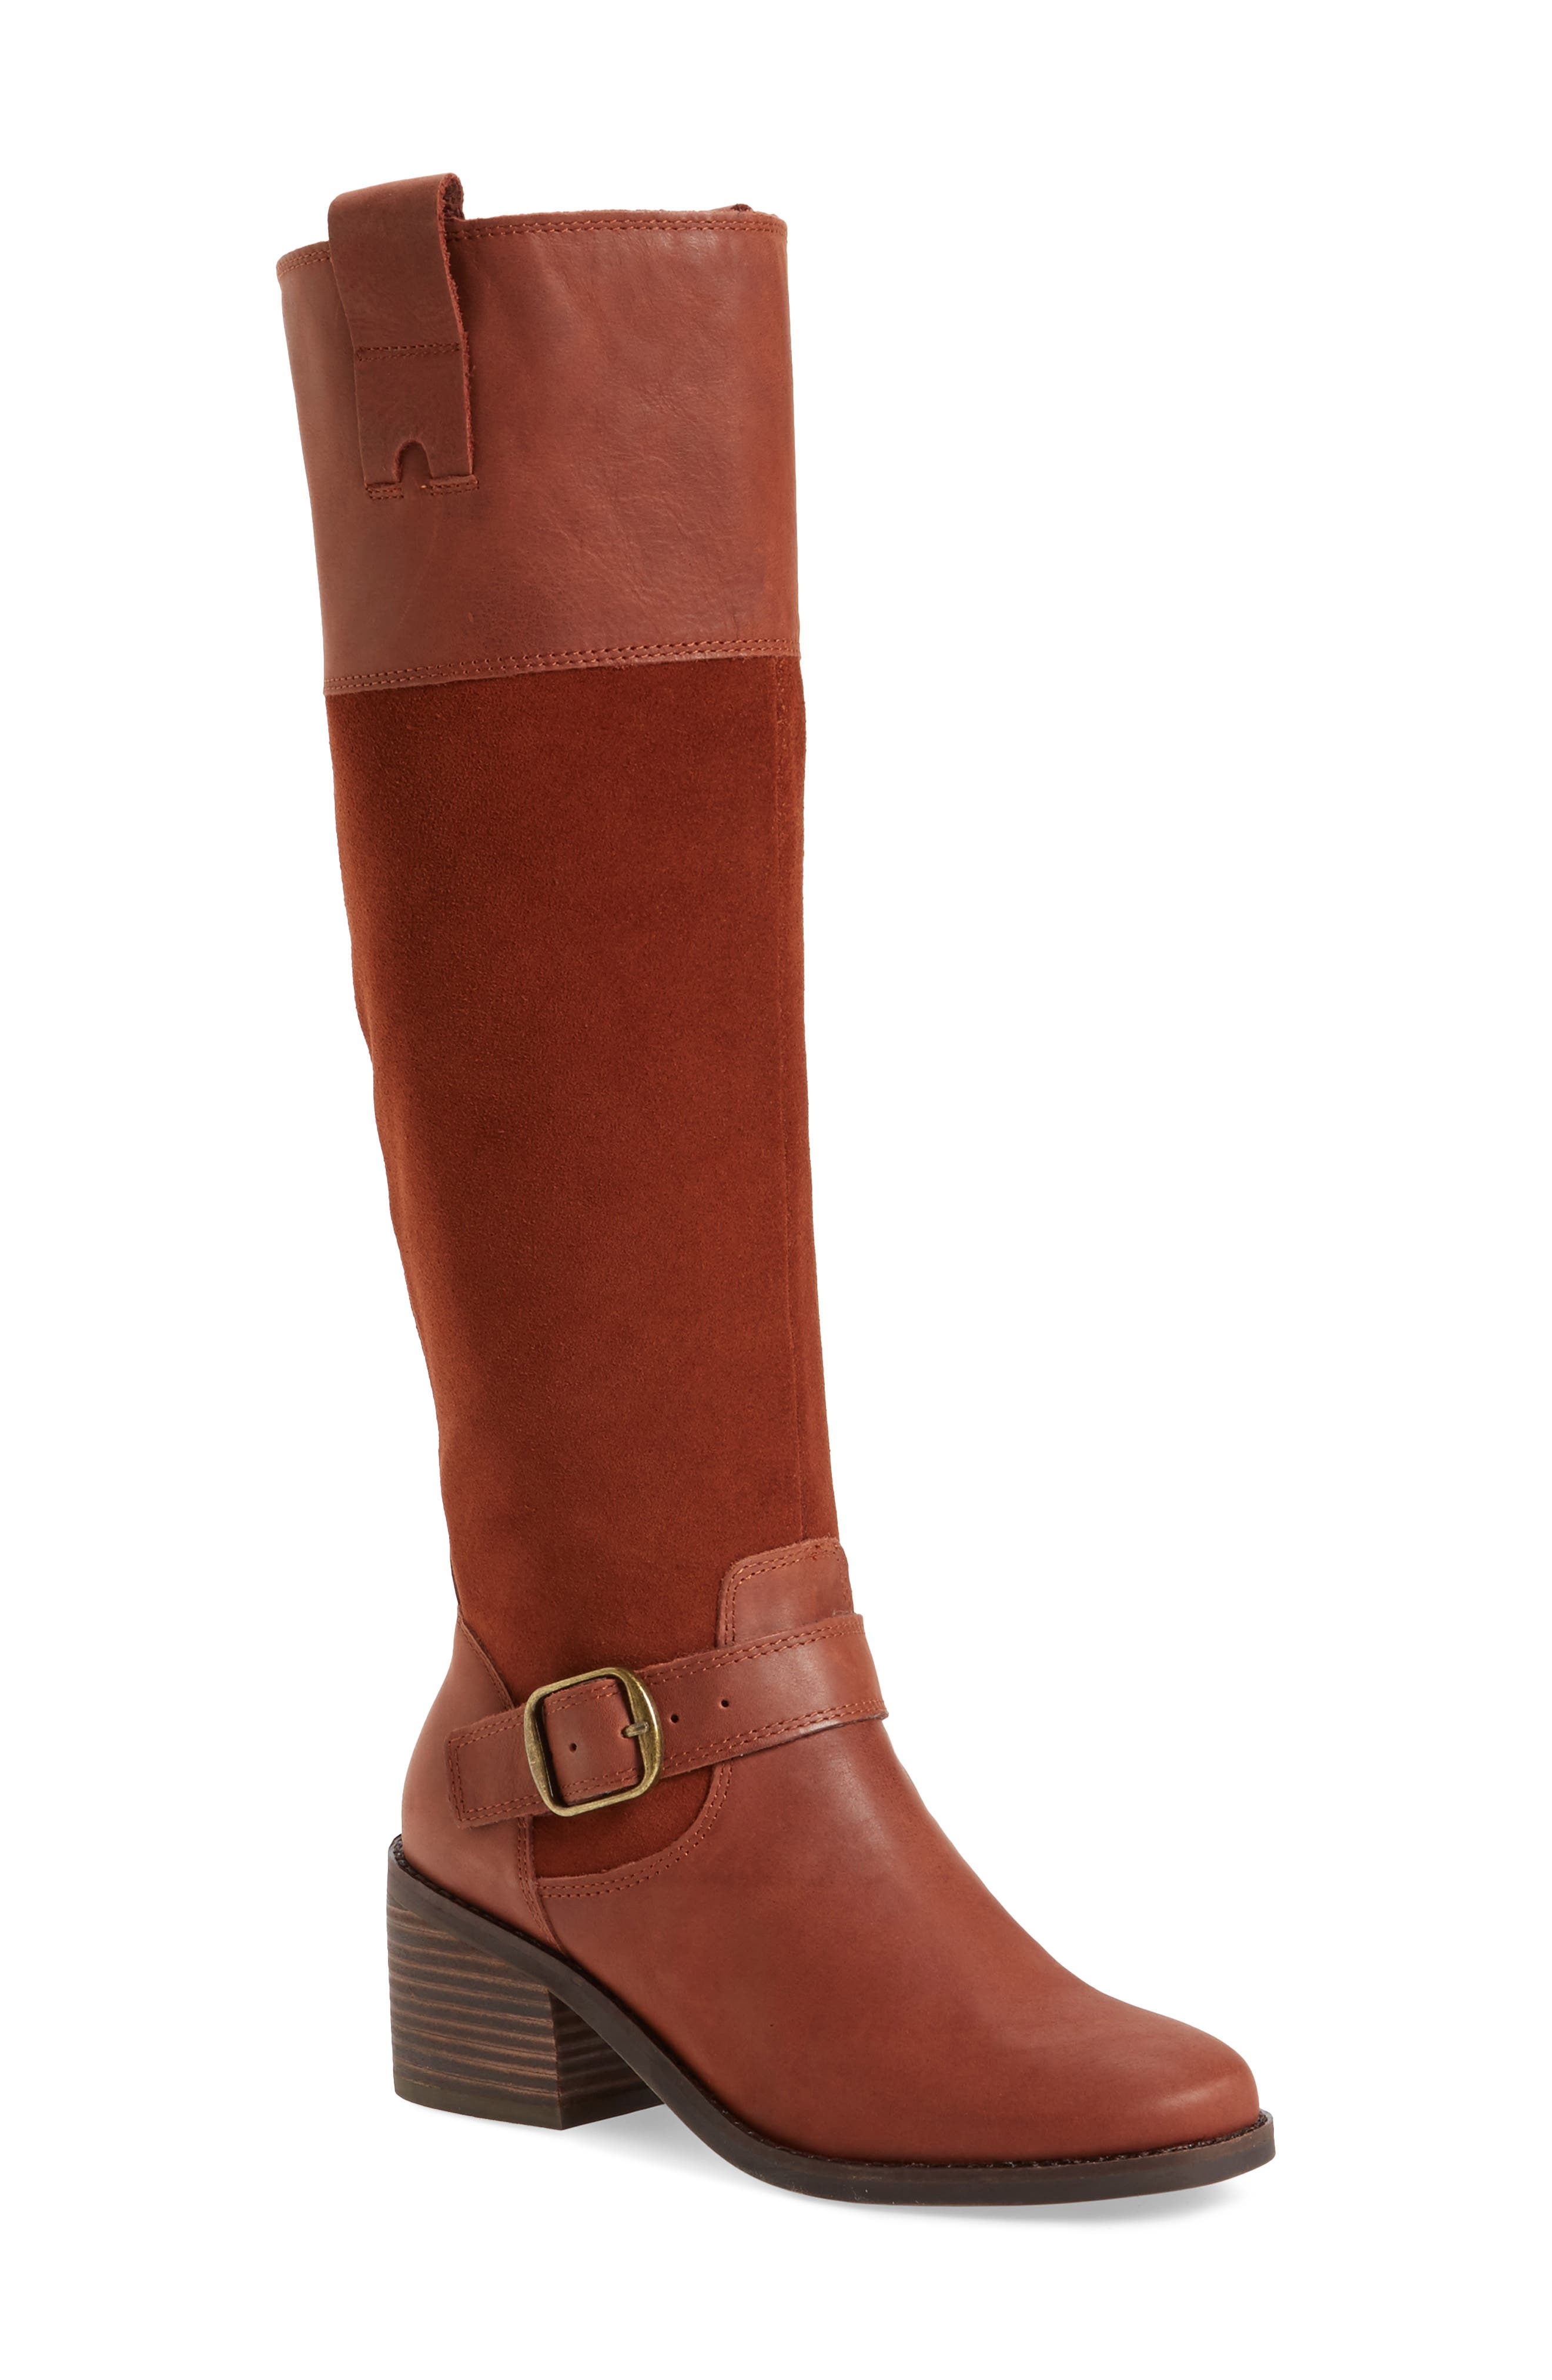 Alternate Image 1 Selected - Lucky Brand Kailan Ankle Strap Tall Boot (Women)